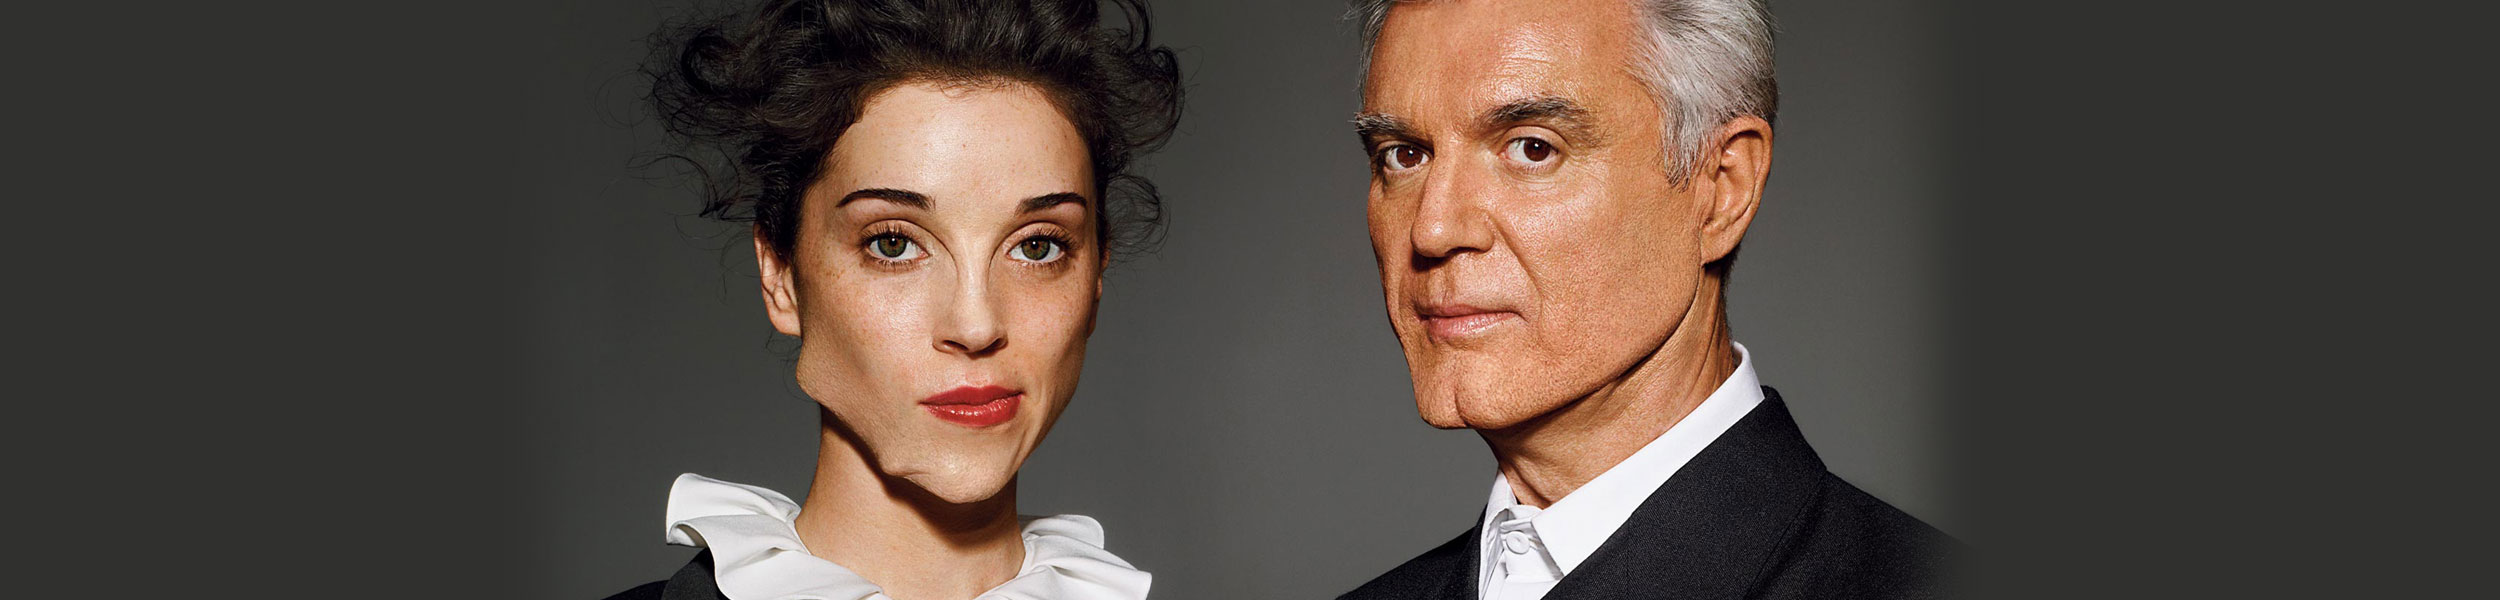 David Byrne & St. Vincent - title